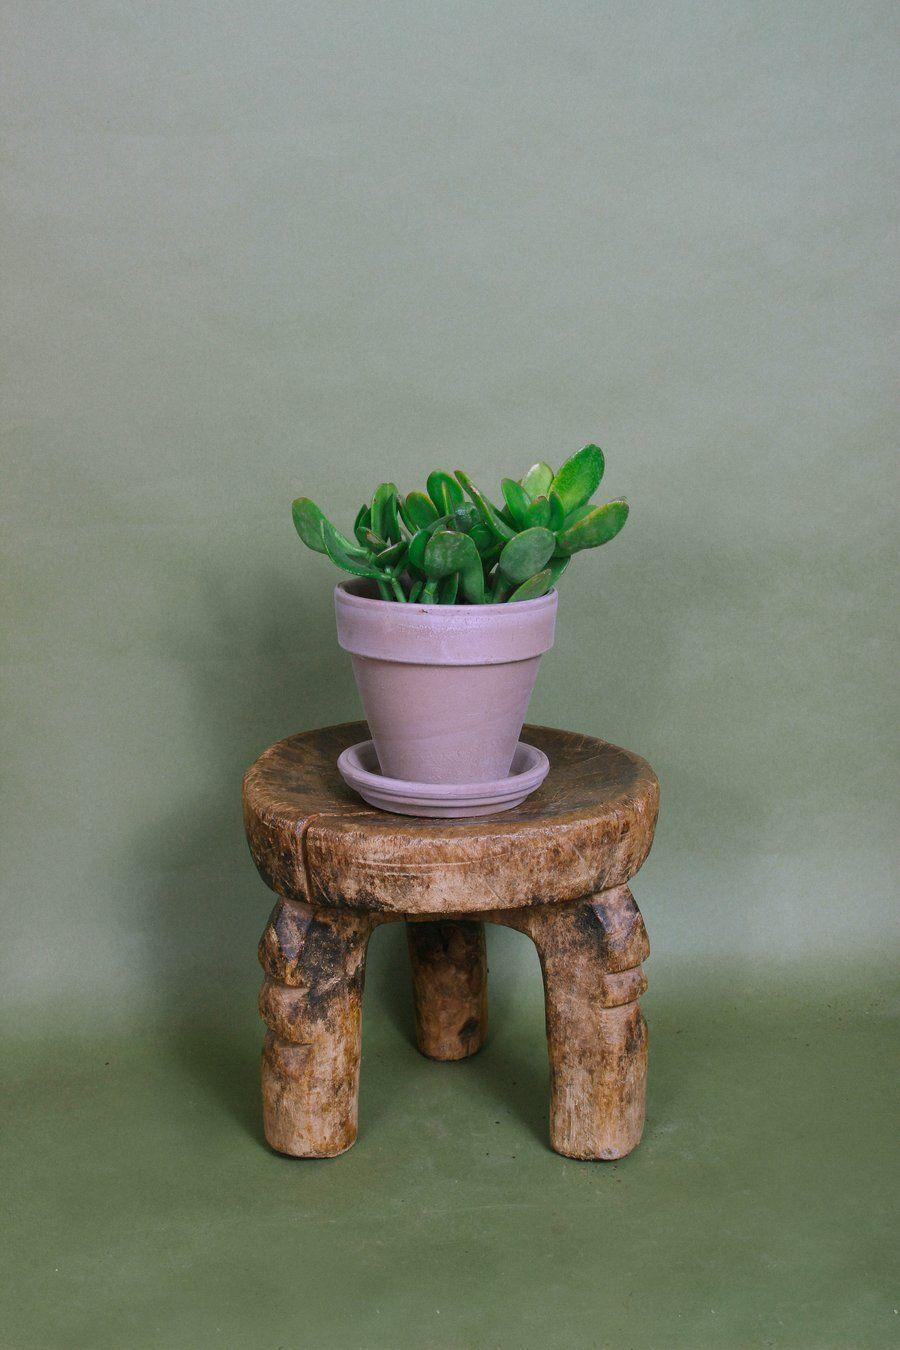 """<p><strong>Grounded Plants</strong></p><p>grounded-plants.com</p><p><strong>$15.00</strong></p><p><a href=""""https://grounded-plants.com/collections/beginner-friendly-plants/products/jade-plant"""" rel=""""nofollow noopener"""" target=""""_blank"""" data-ylk=""""slk:Shop Now"""" class=""""link rapid-noclick-resp"""">Shop Now</a></p><p>An under-$20 gorgeous plant that only needs to be watered once a week and is a symbol of good luck? SAY. LESS.</p>"""